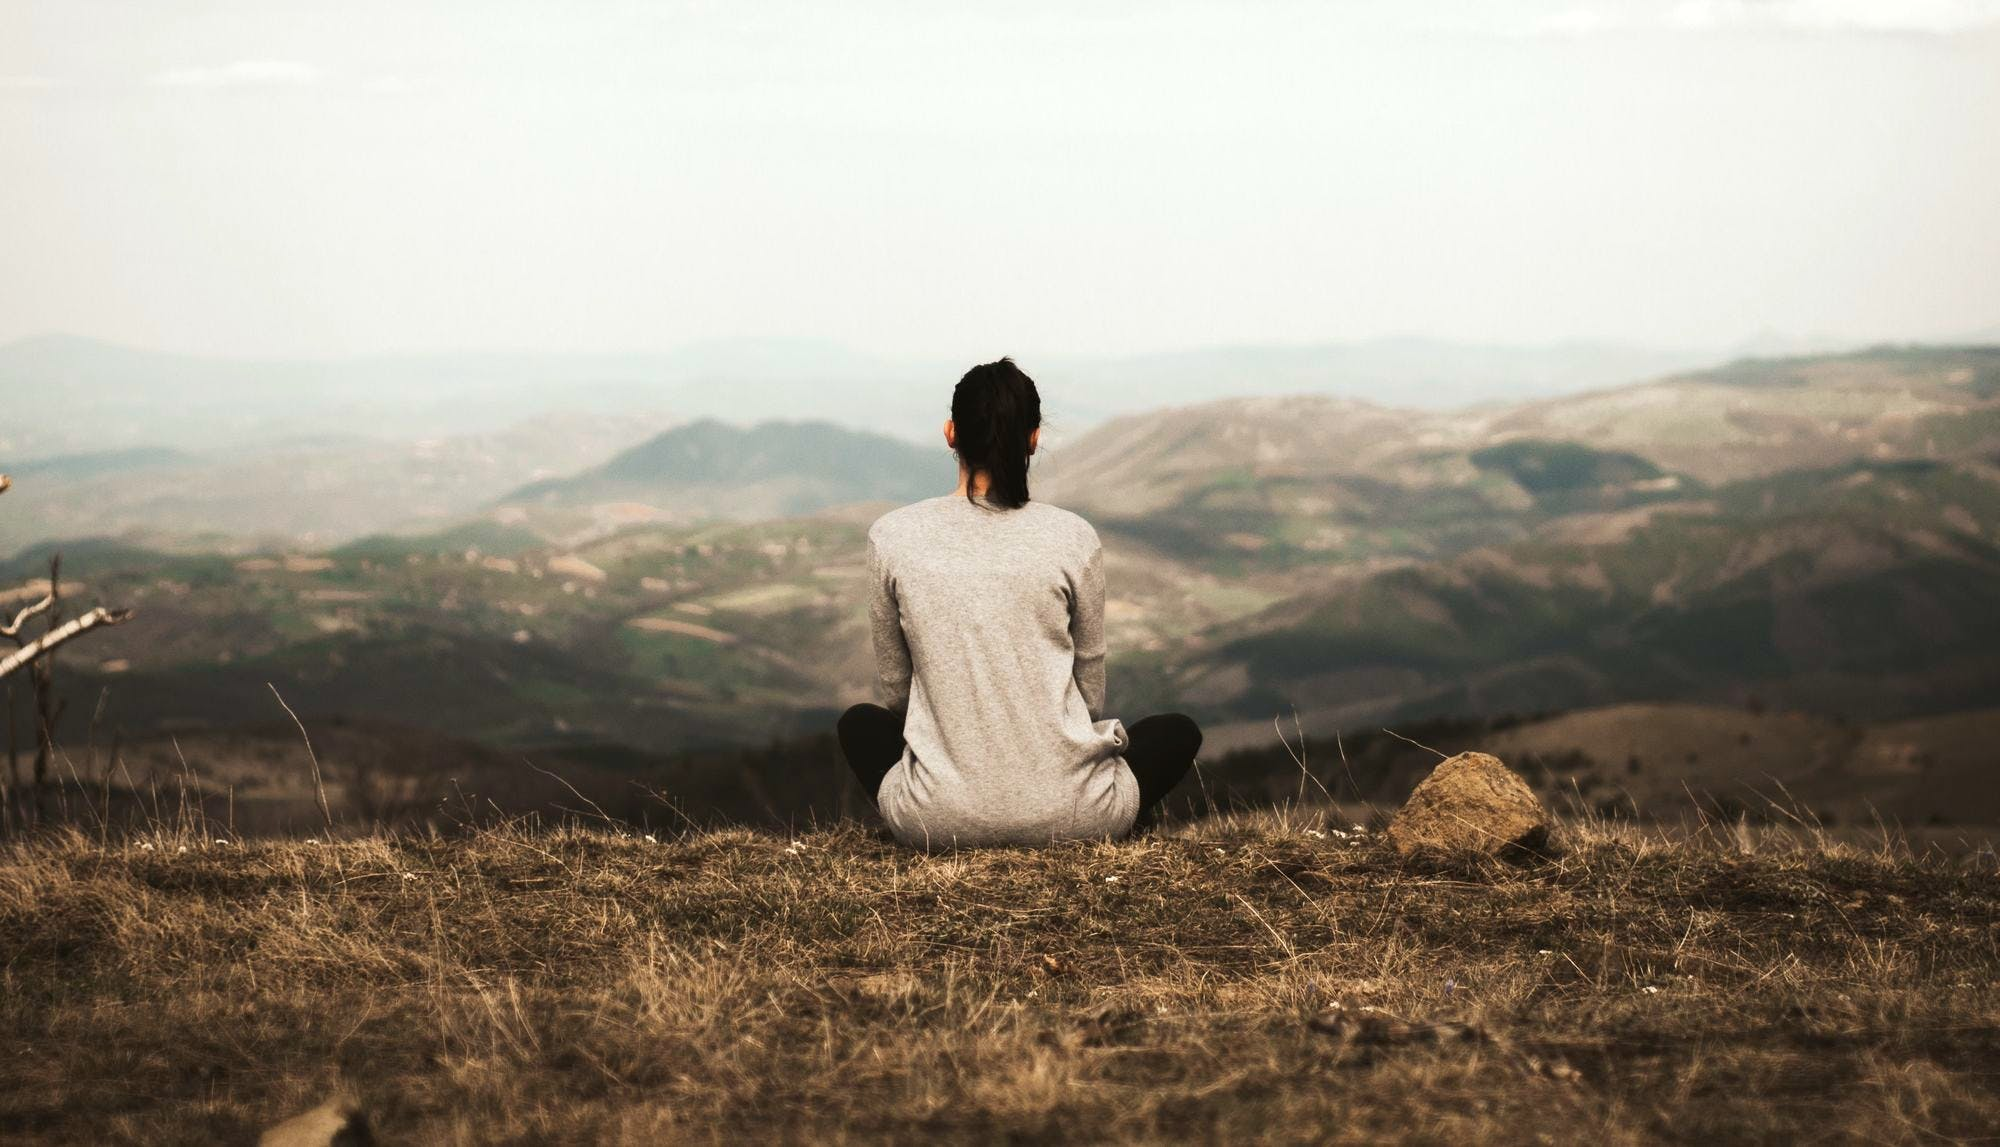 How to Use Mindfulness to Achieve Peak Performance, from Labs WeIR Amy Jin